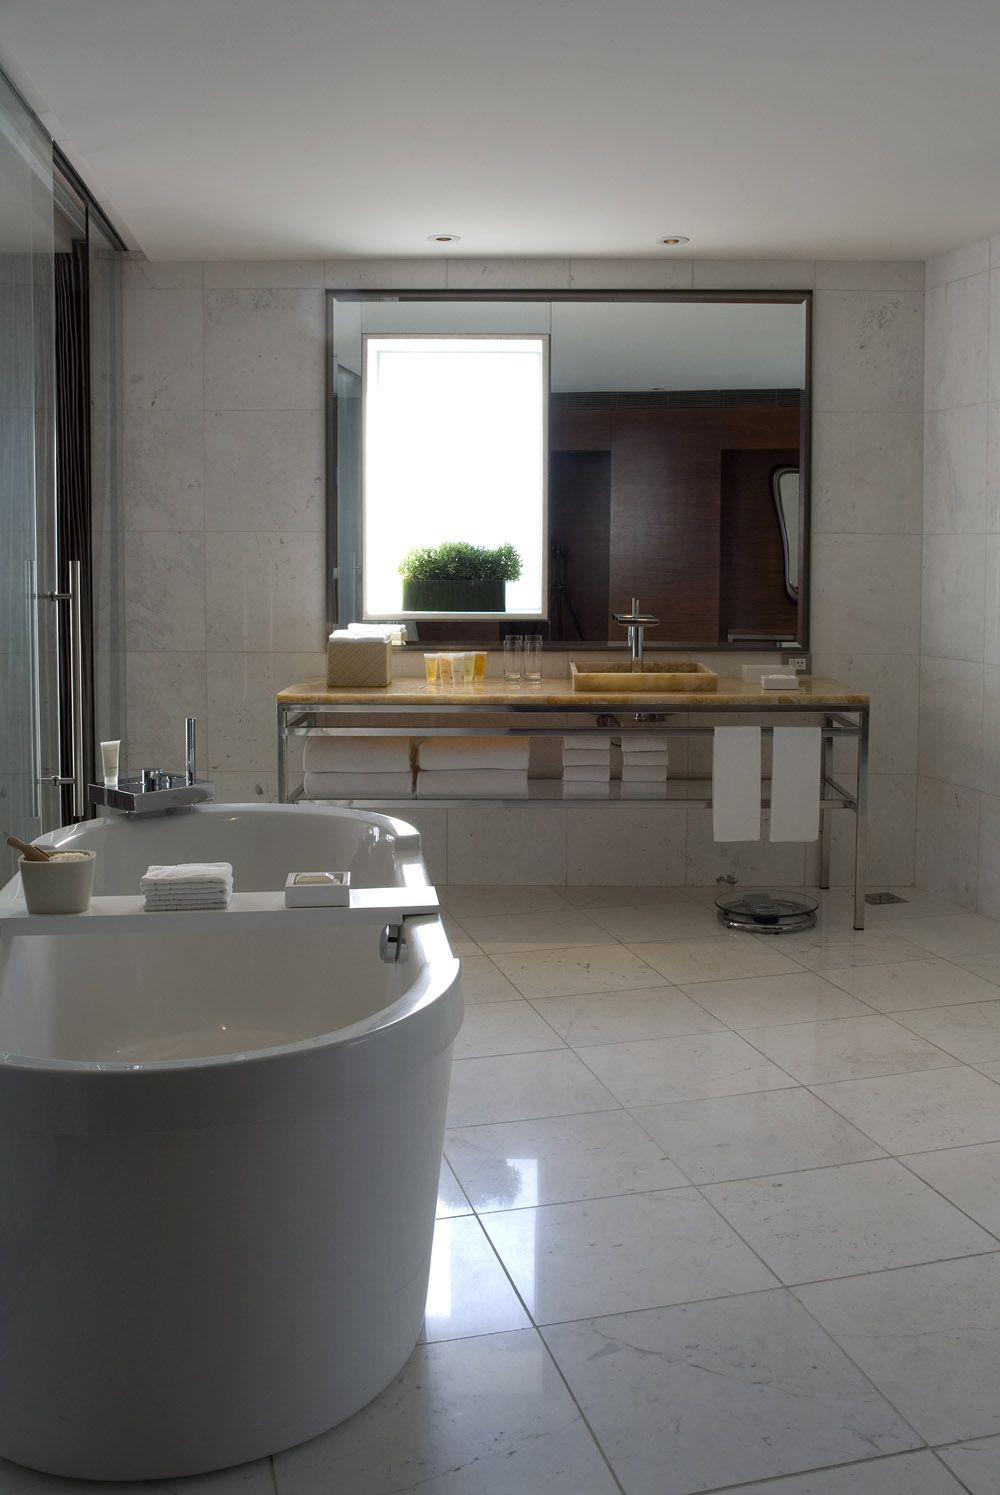 Beautiful Baths And Kitchens Bathroom Isay Weinfeld 3 Baths And Kitchens Pinterest Chang